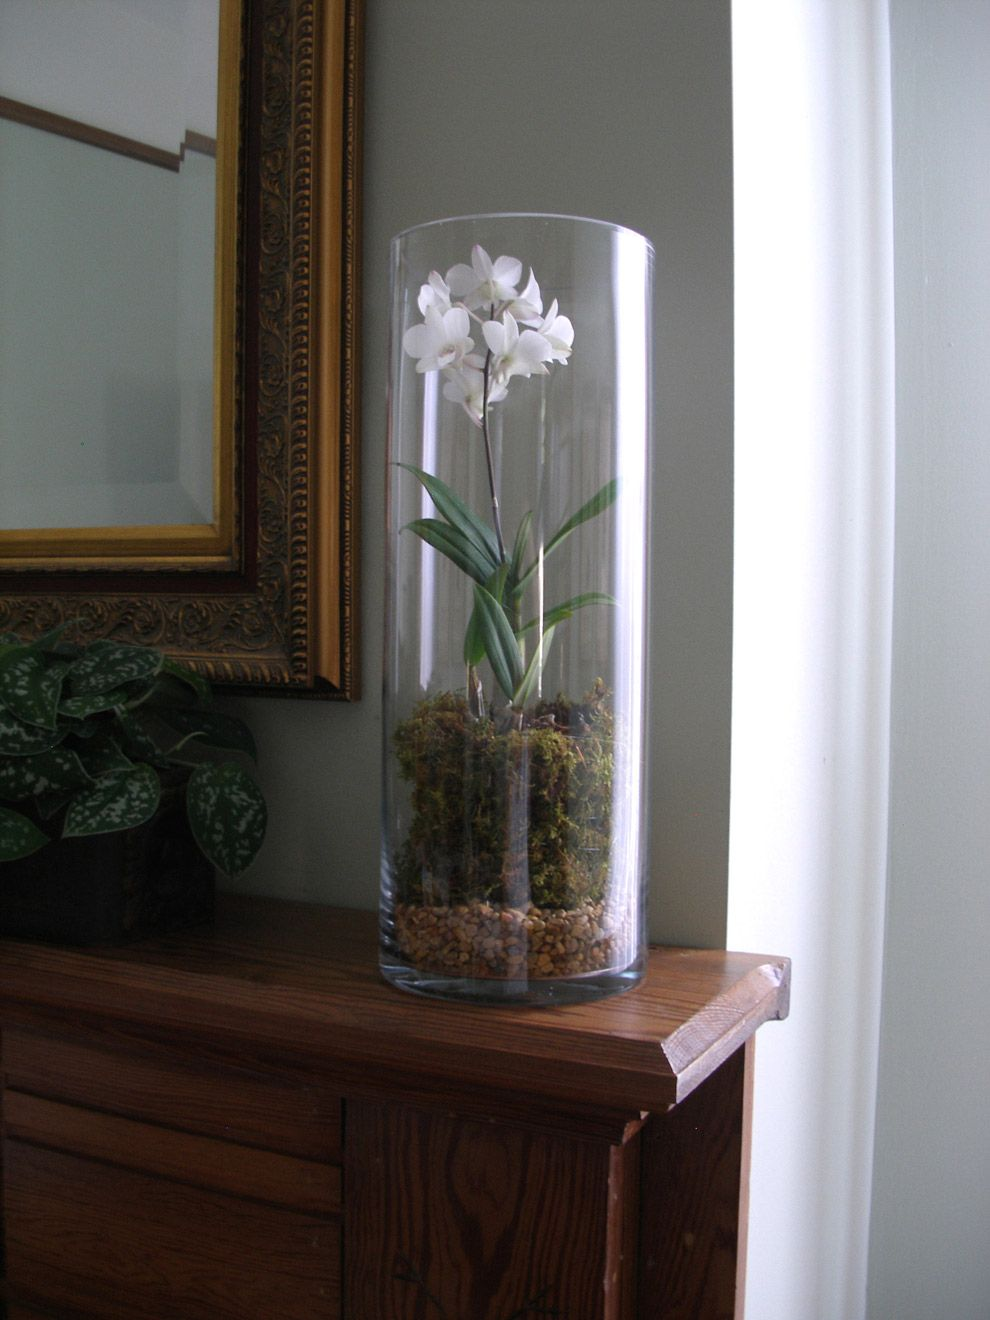 Using Round Cylinder Clear Glass Extra Tall Vase For Orchid Things My House